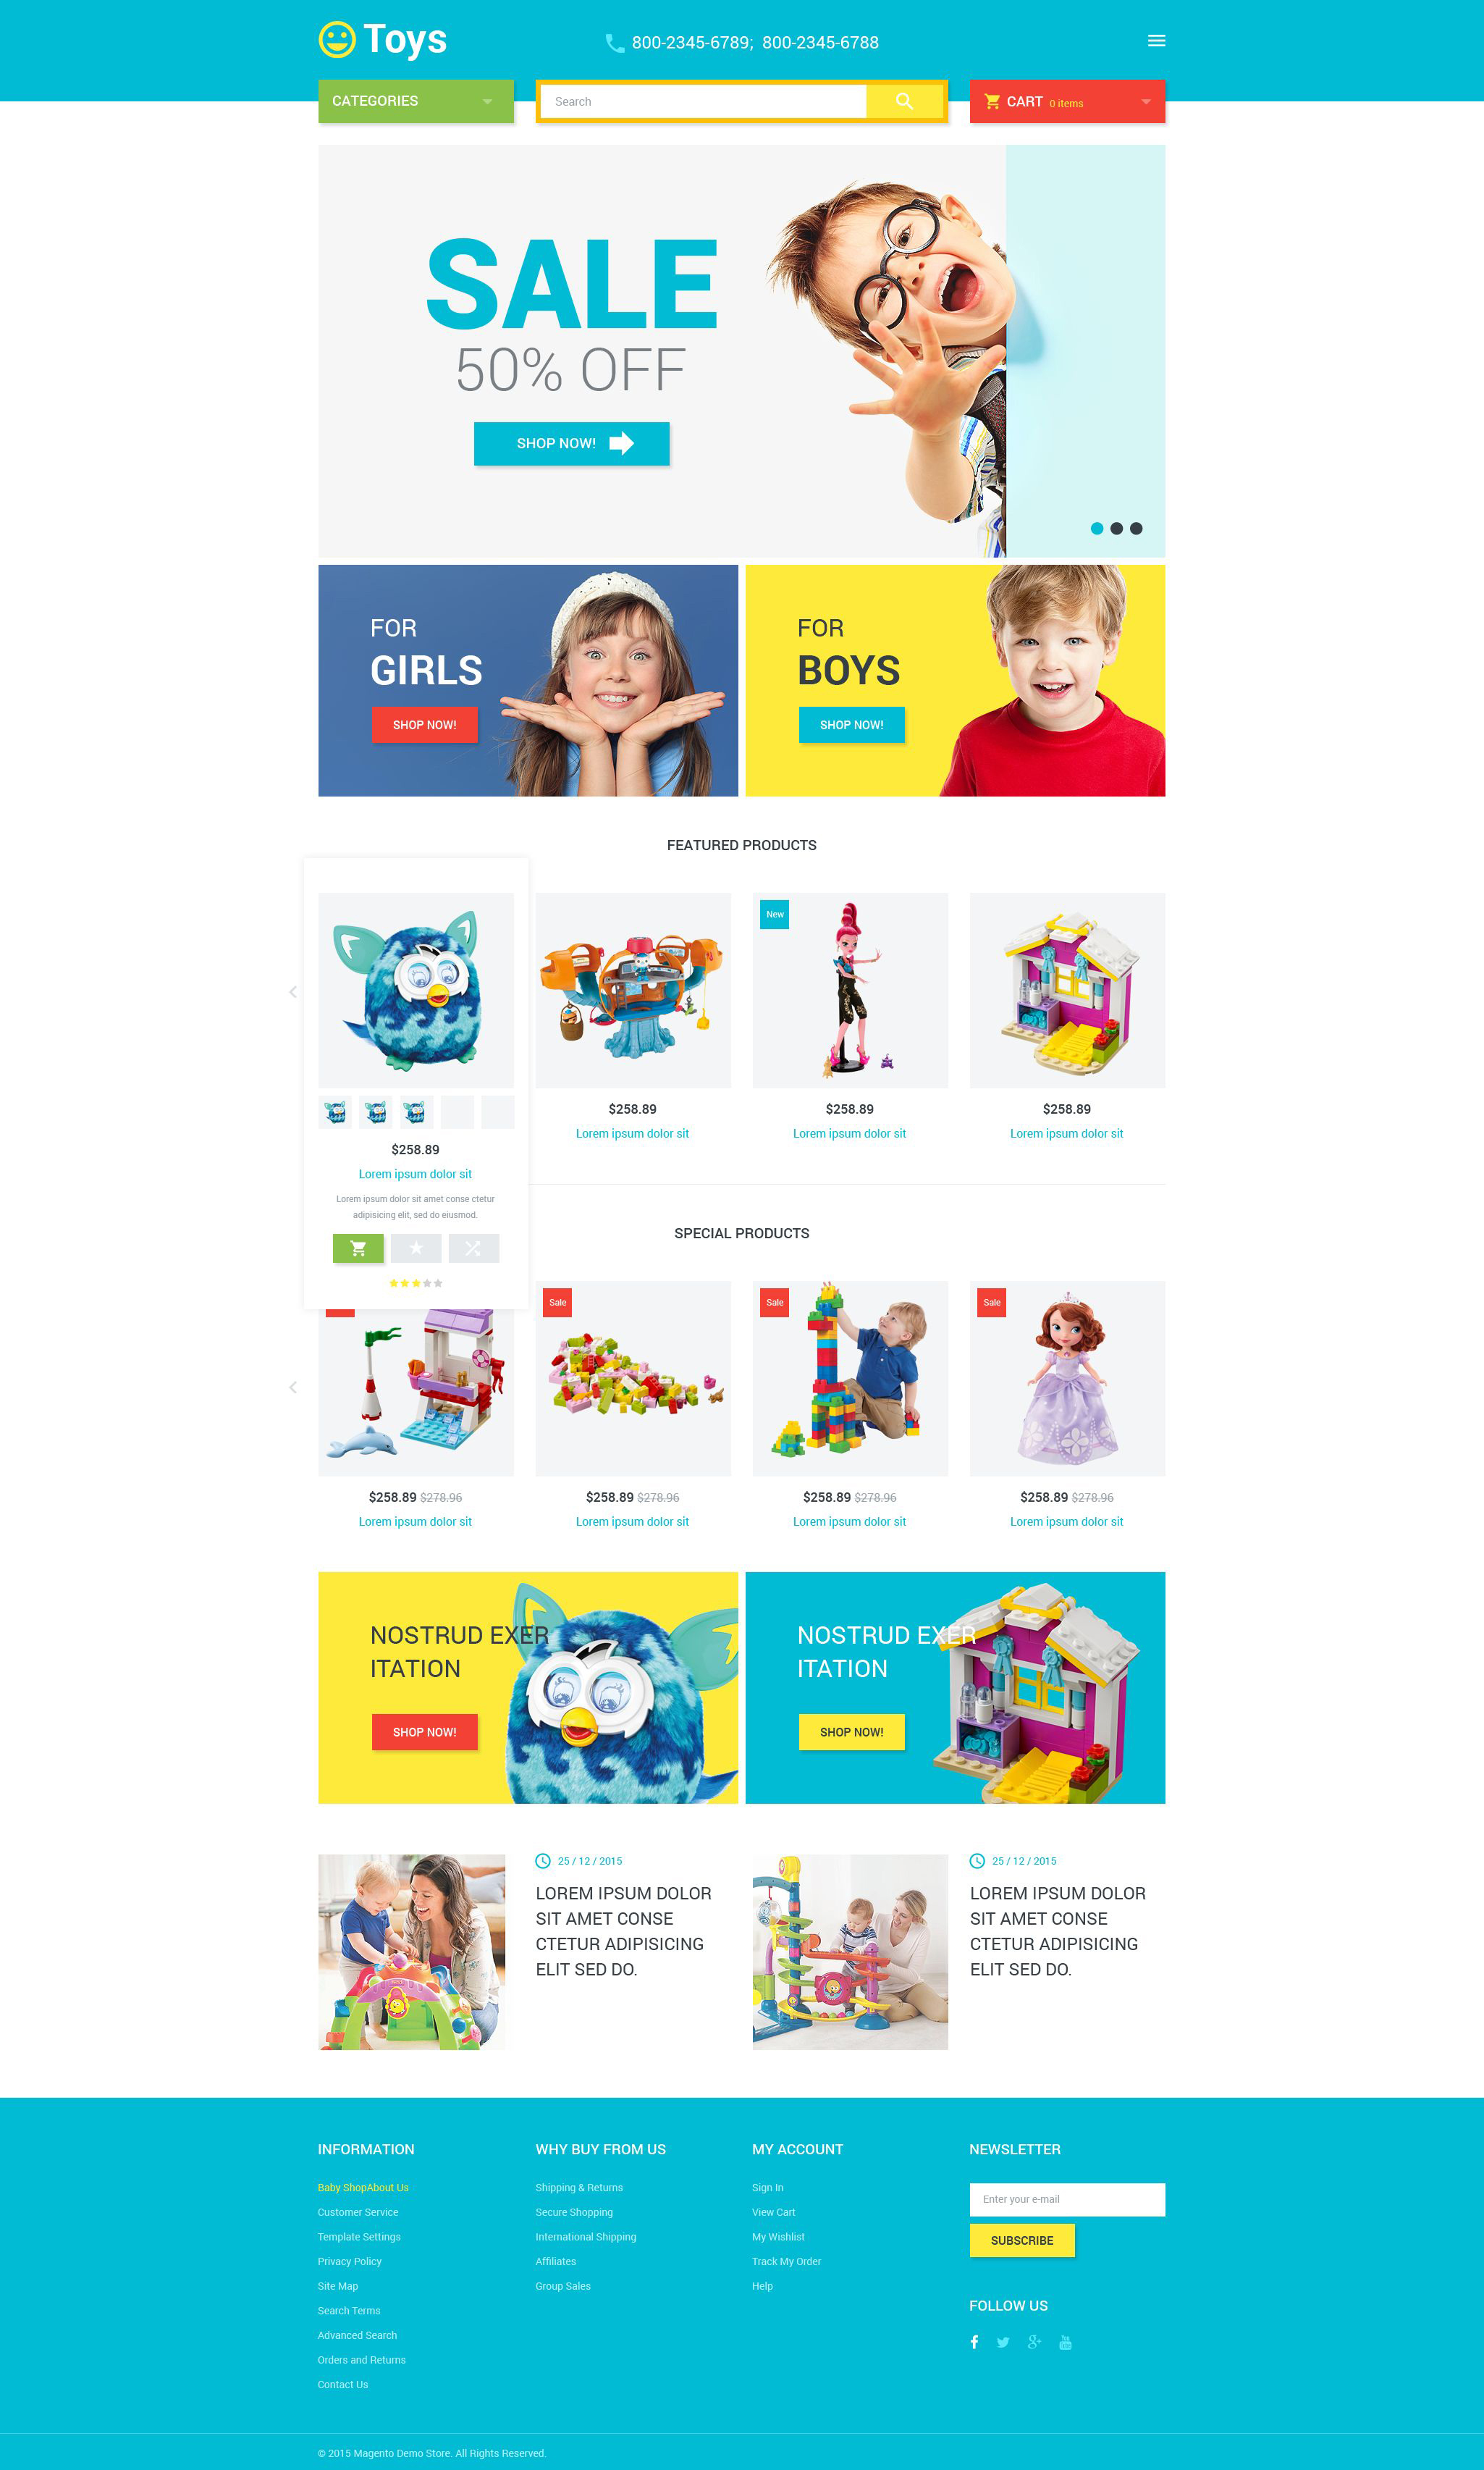 The Toys Store Magento Design 53681, one of the best Magento themes of its kind (entertainment, most popular), also known as toys store Magento template, baby online shop Magento template, gift Magento template, toy Magento template, exclusive Magento template, children Magento template, animals Magento template, wildlife Magento template, party Magento template, favors Magento template, cool Magento template, vehicle Magento template, outdoor Magento template, developmental Magento template, car Magento template, doll Magento template, game Magento template, dog Magento template, teddy Magento template, bear Magento template, roadster Magento template, frog Magento template, mover Magento template, table Magento template, ball Magento template, puzzle Magento template, bus Magento template, plush Magento template, battleship Magento template, air Magento template, chair Magento template, presents Magento template, snowmen Magento template, delivery and related with toys store, baby online shop, gift, toy, exclusive, children, animals, wildlife, party, favors, cool, vehicle, outdoor, developmental, car, doll, game, dog, teddy, bear, roadster, frog, mover, table, ball, puzzle, bus, plush, battleship, air, chair, presents, snowmen, delivery, etc.